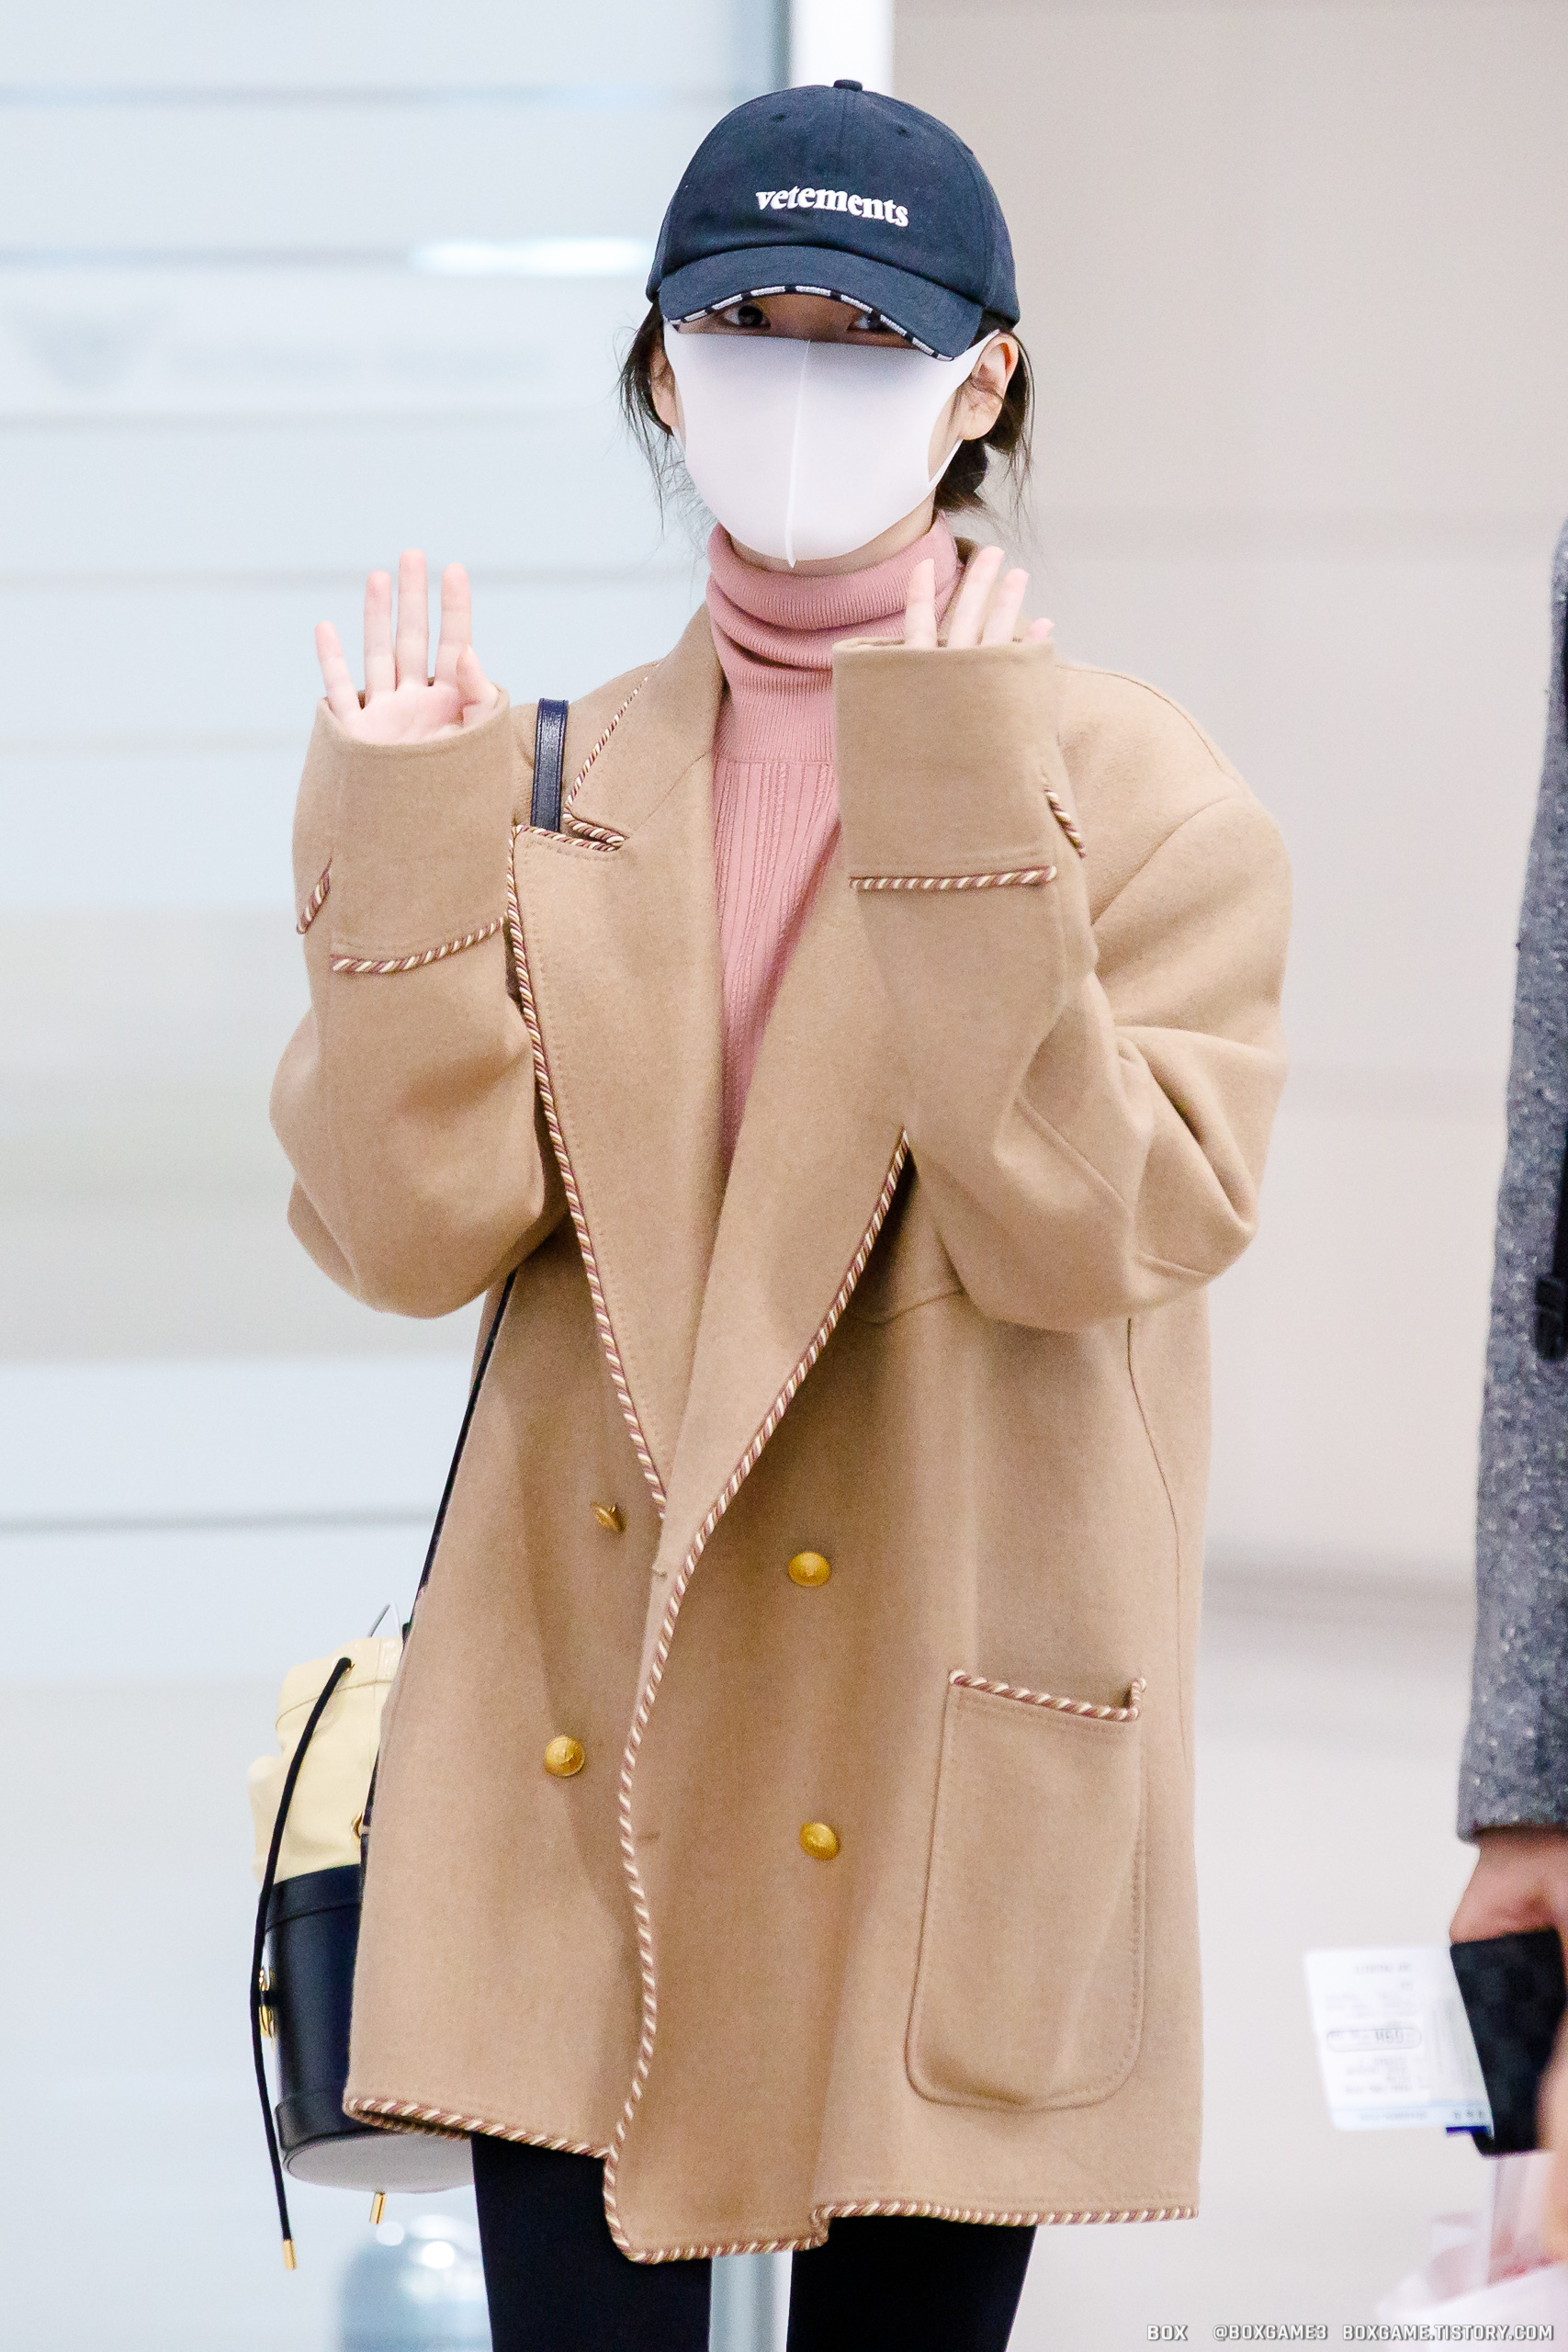 20200222 IU arrived at Incheon Airport from Milan